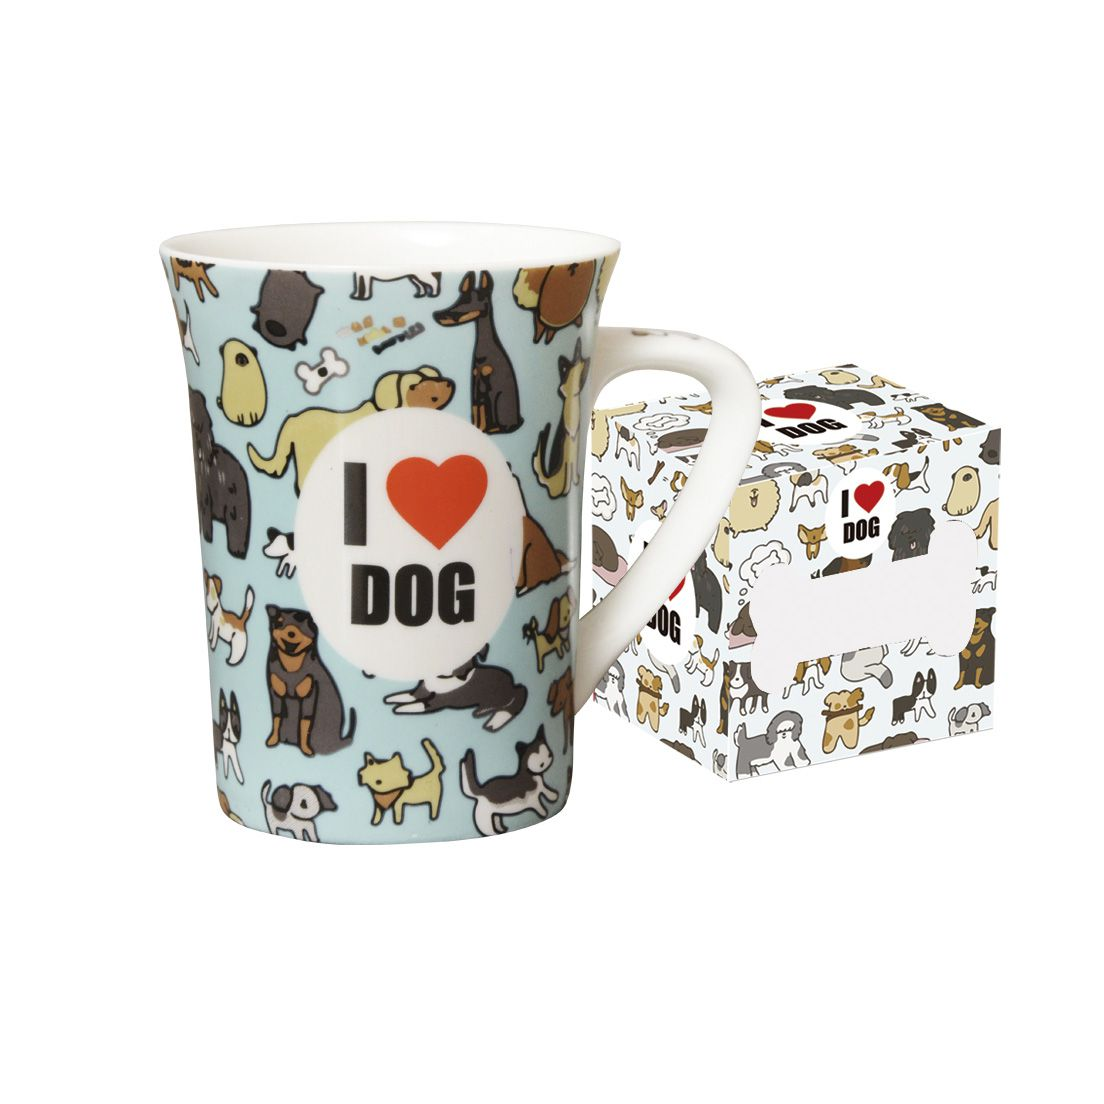 Caneca de Porcelana Fina 330Ml Dog